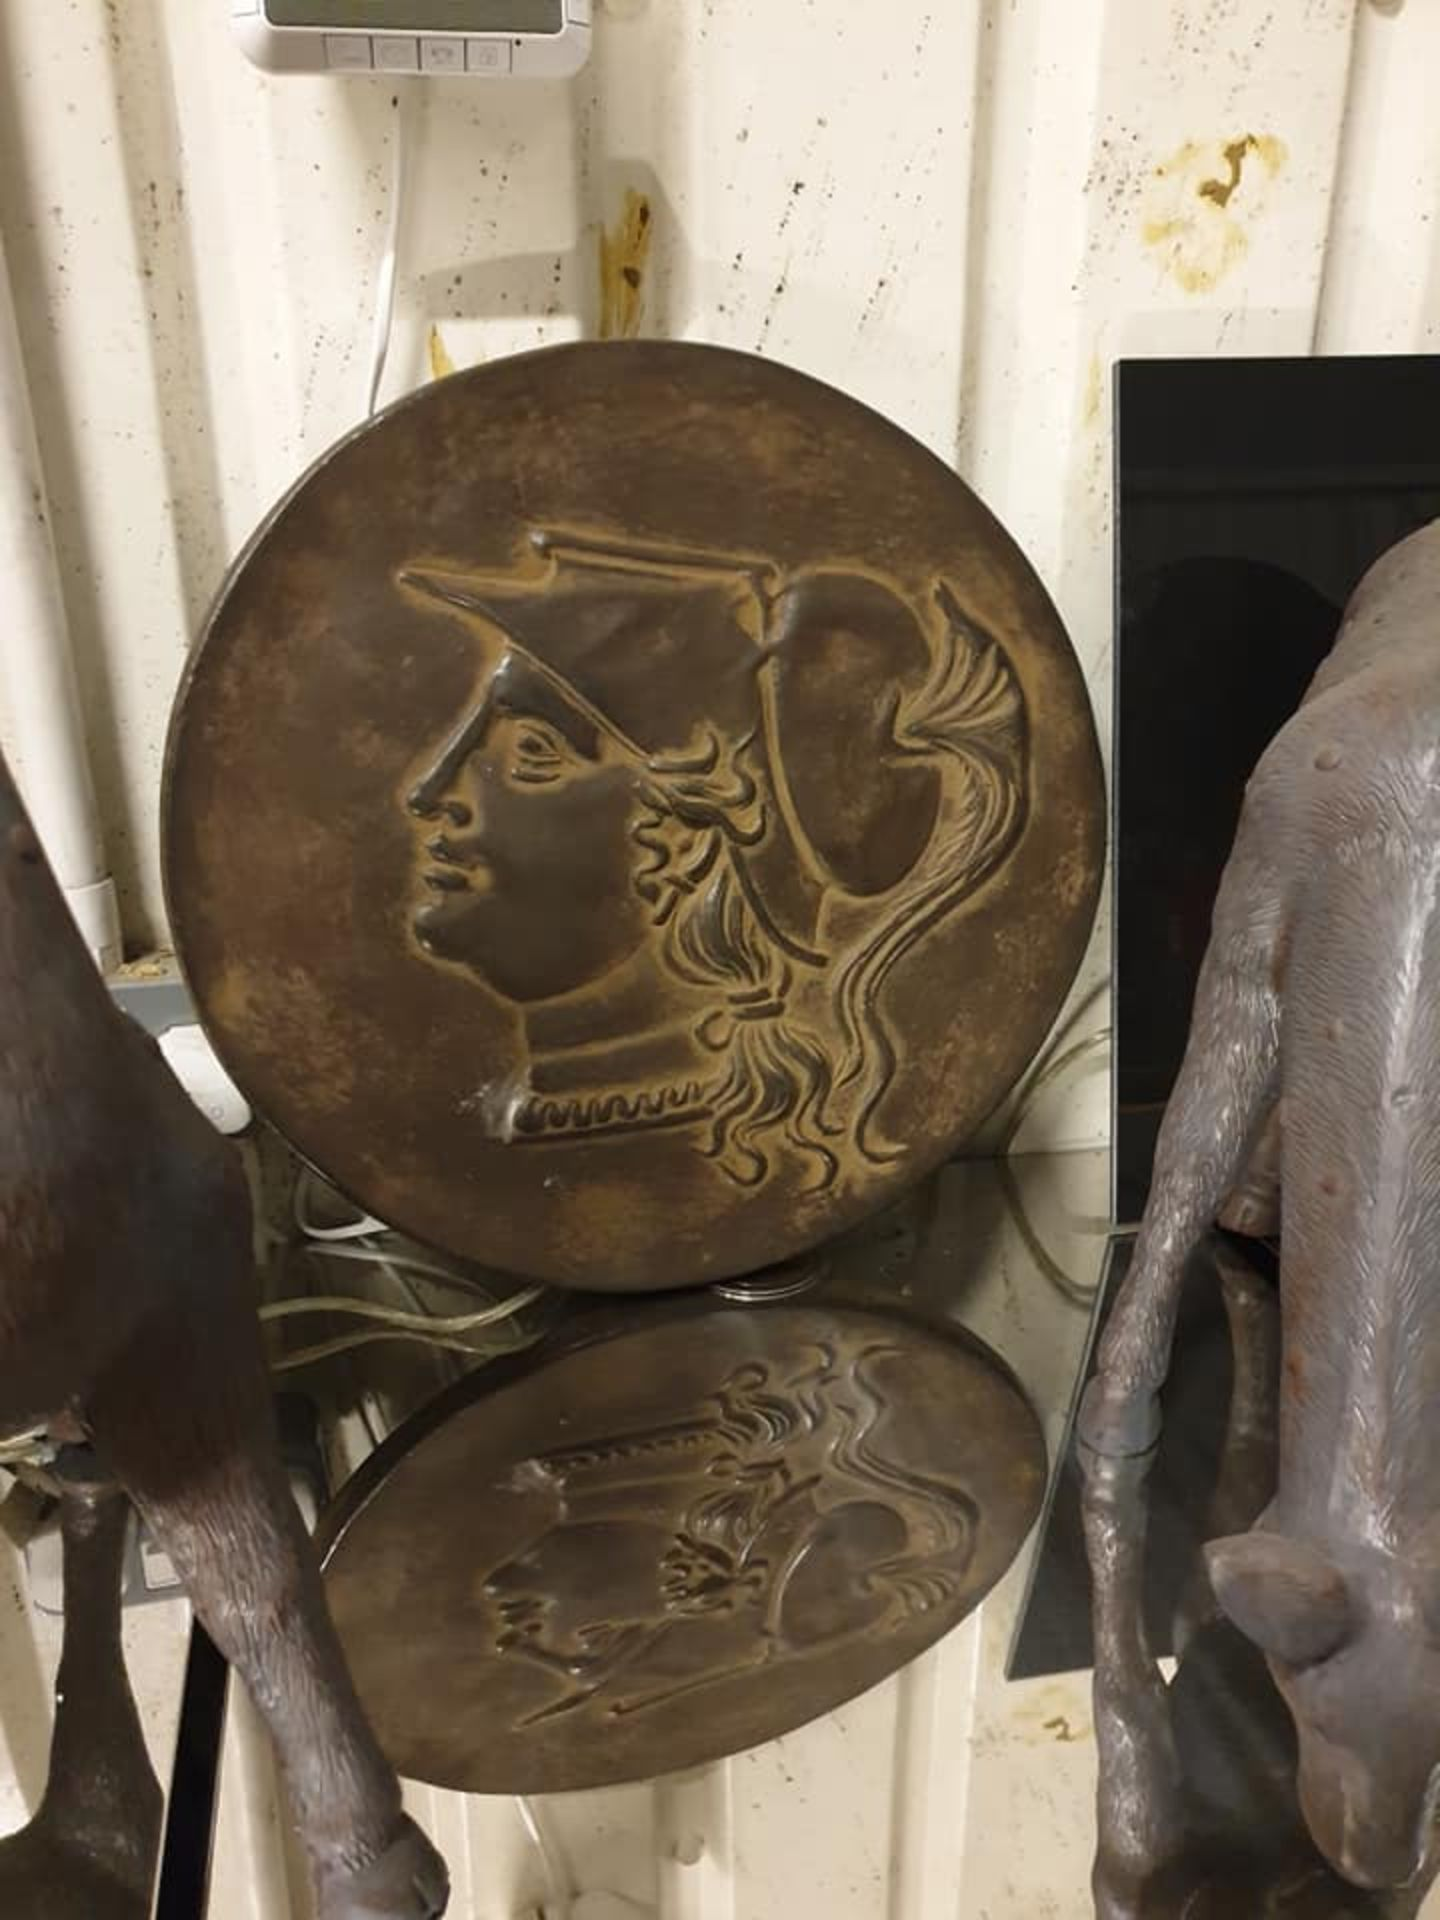 Lot 1 - Bronzed Resin Sculpture Antique Coin Medallion B Objets d'Art Decorative Accessories 40cm Diameter